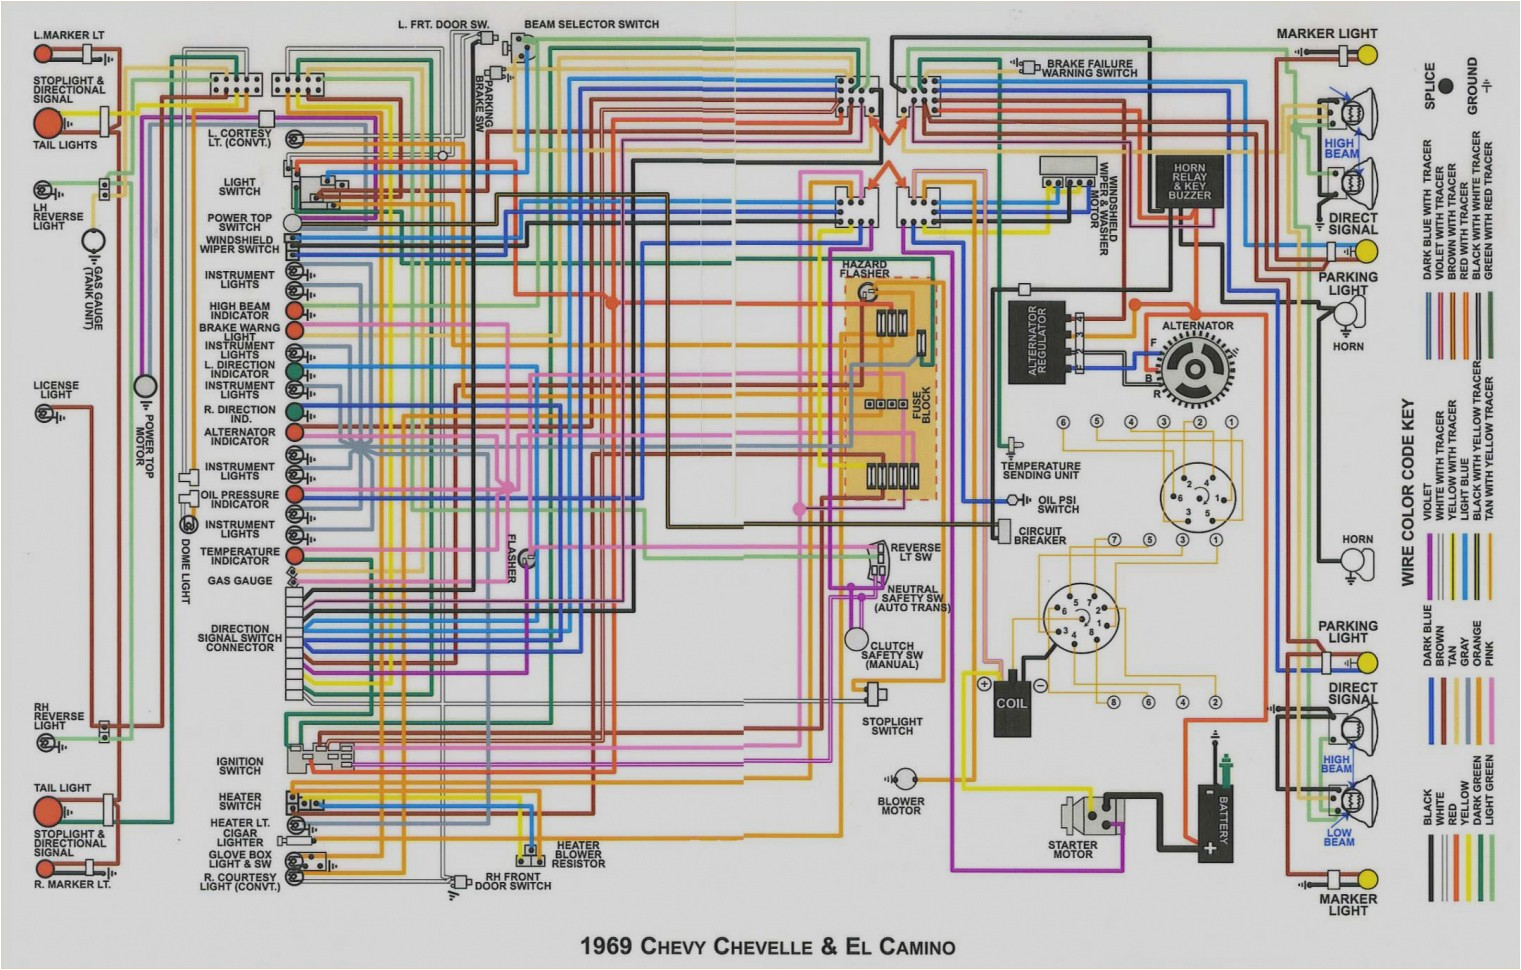 fuse box diagram 1966 el camino chevelle worksheet and wiring rh bookinc co 65 el camino